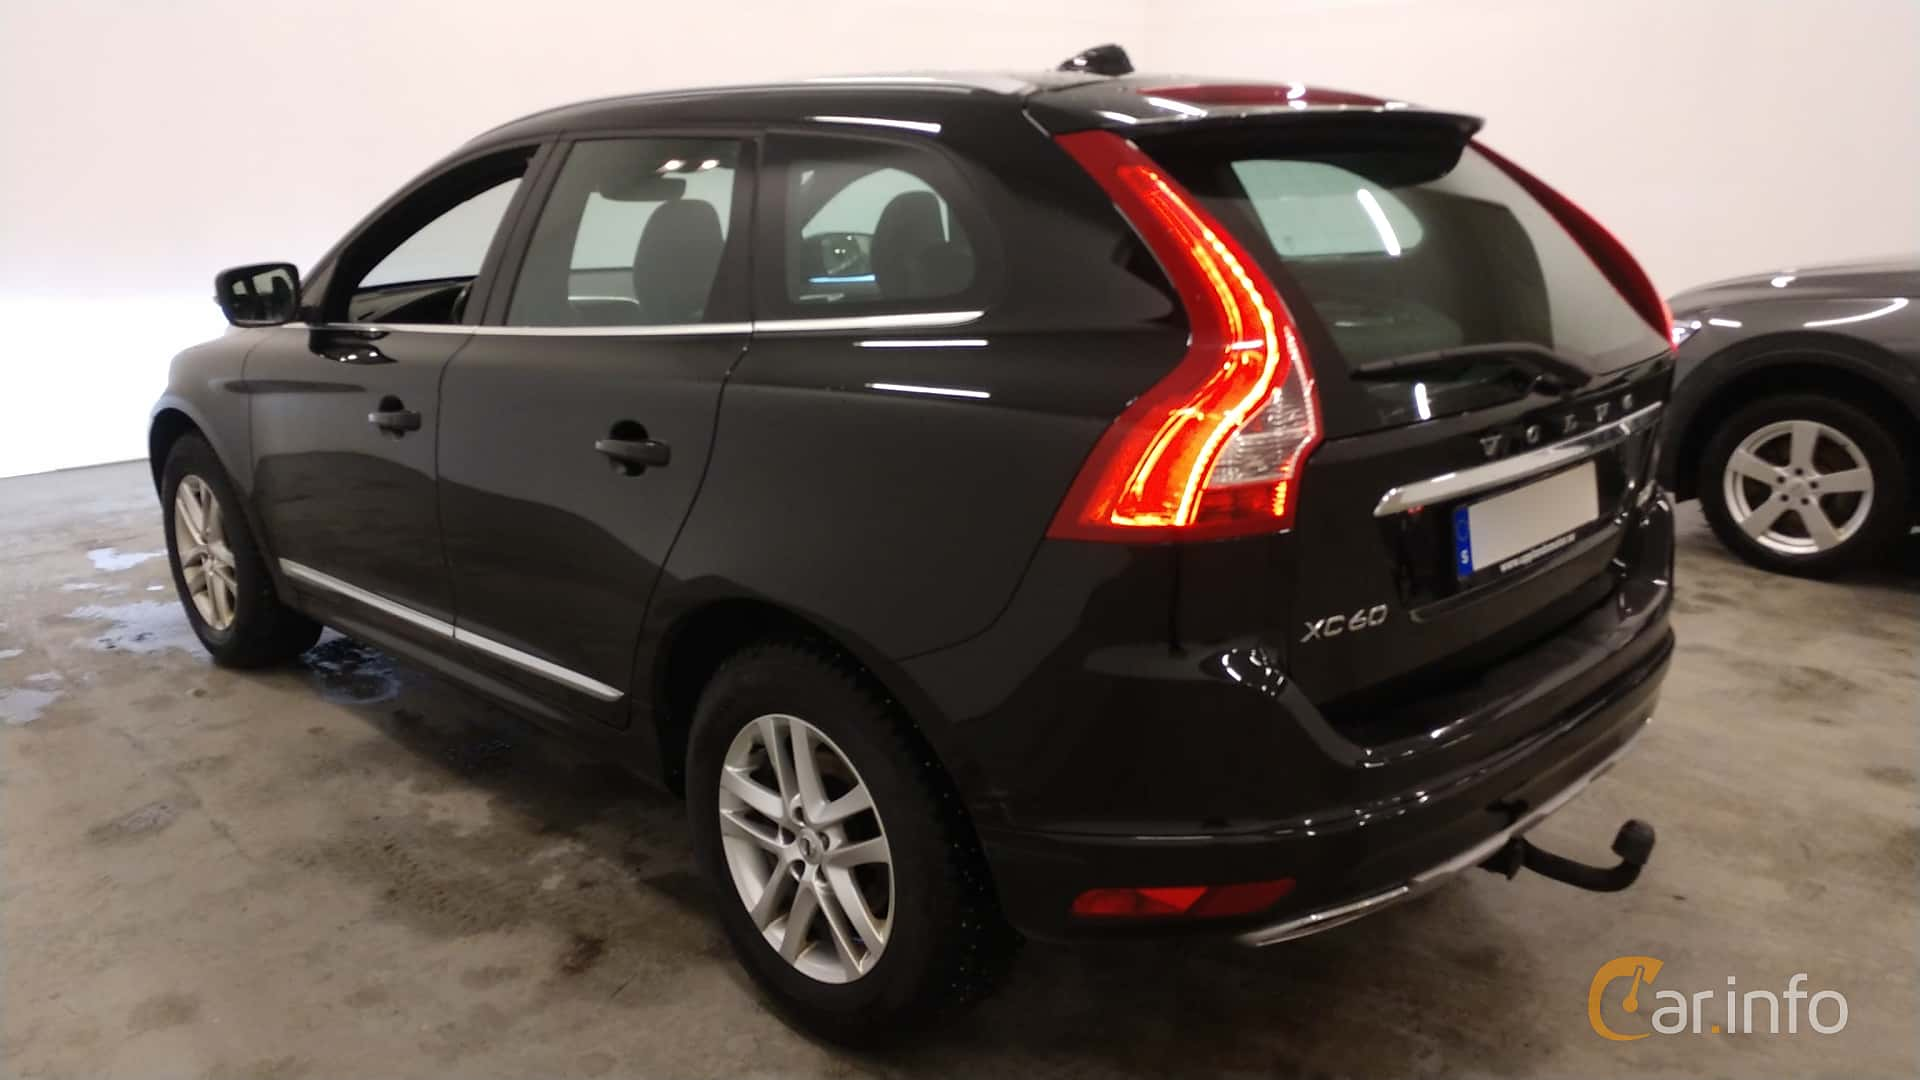 Volvo XC60 D4 AWD Geartronic, 190hp, 2017